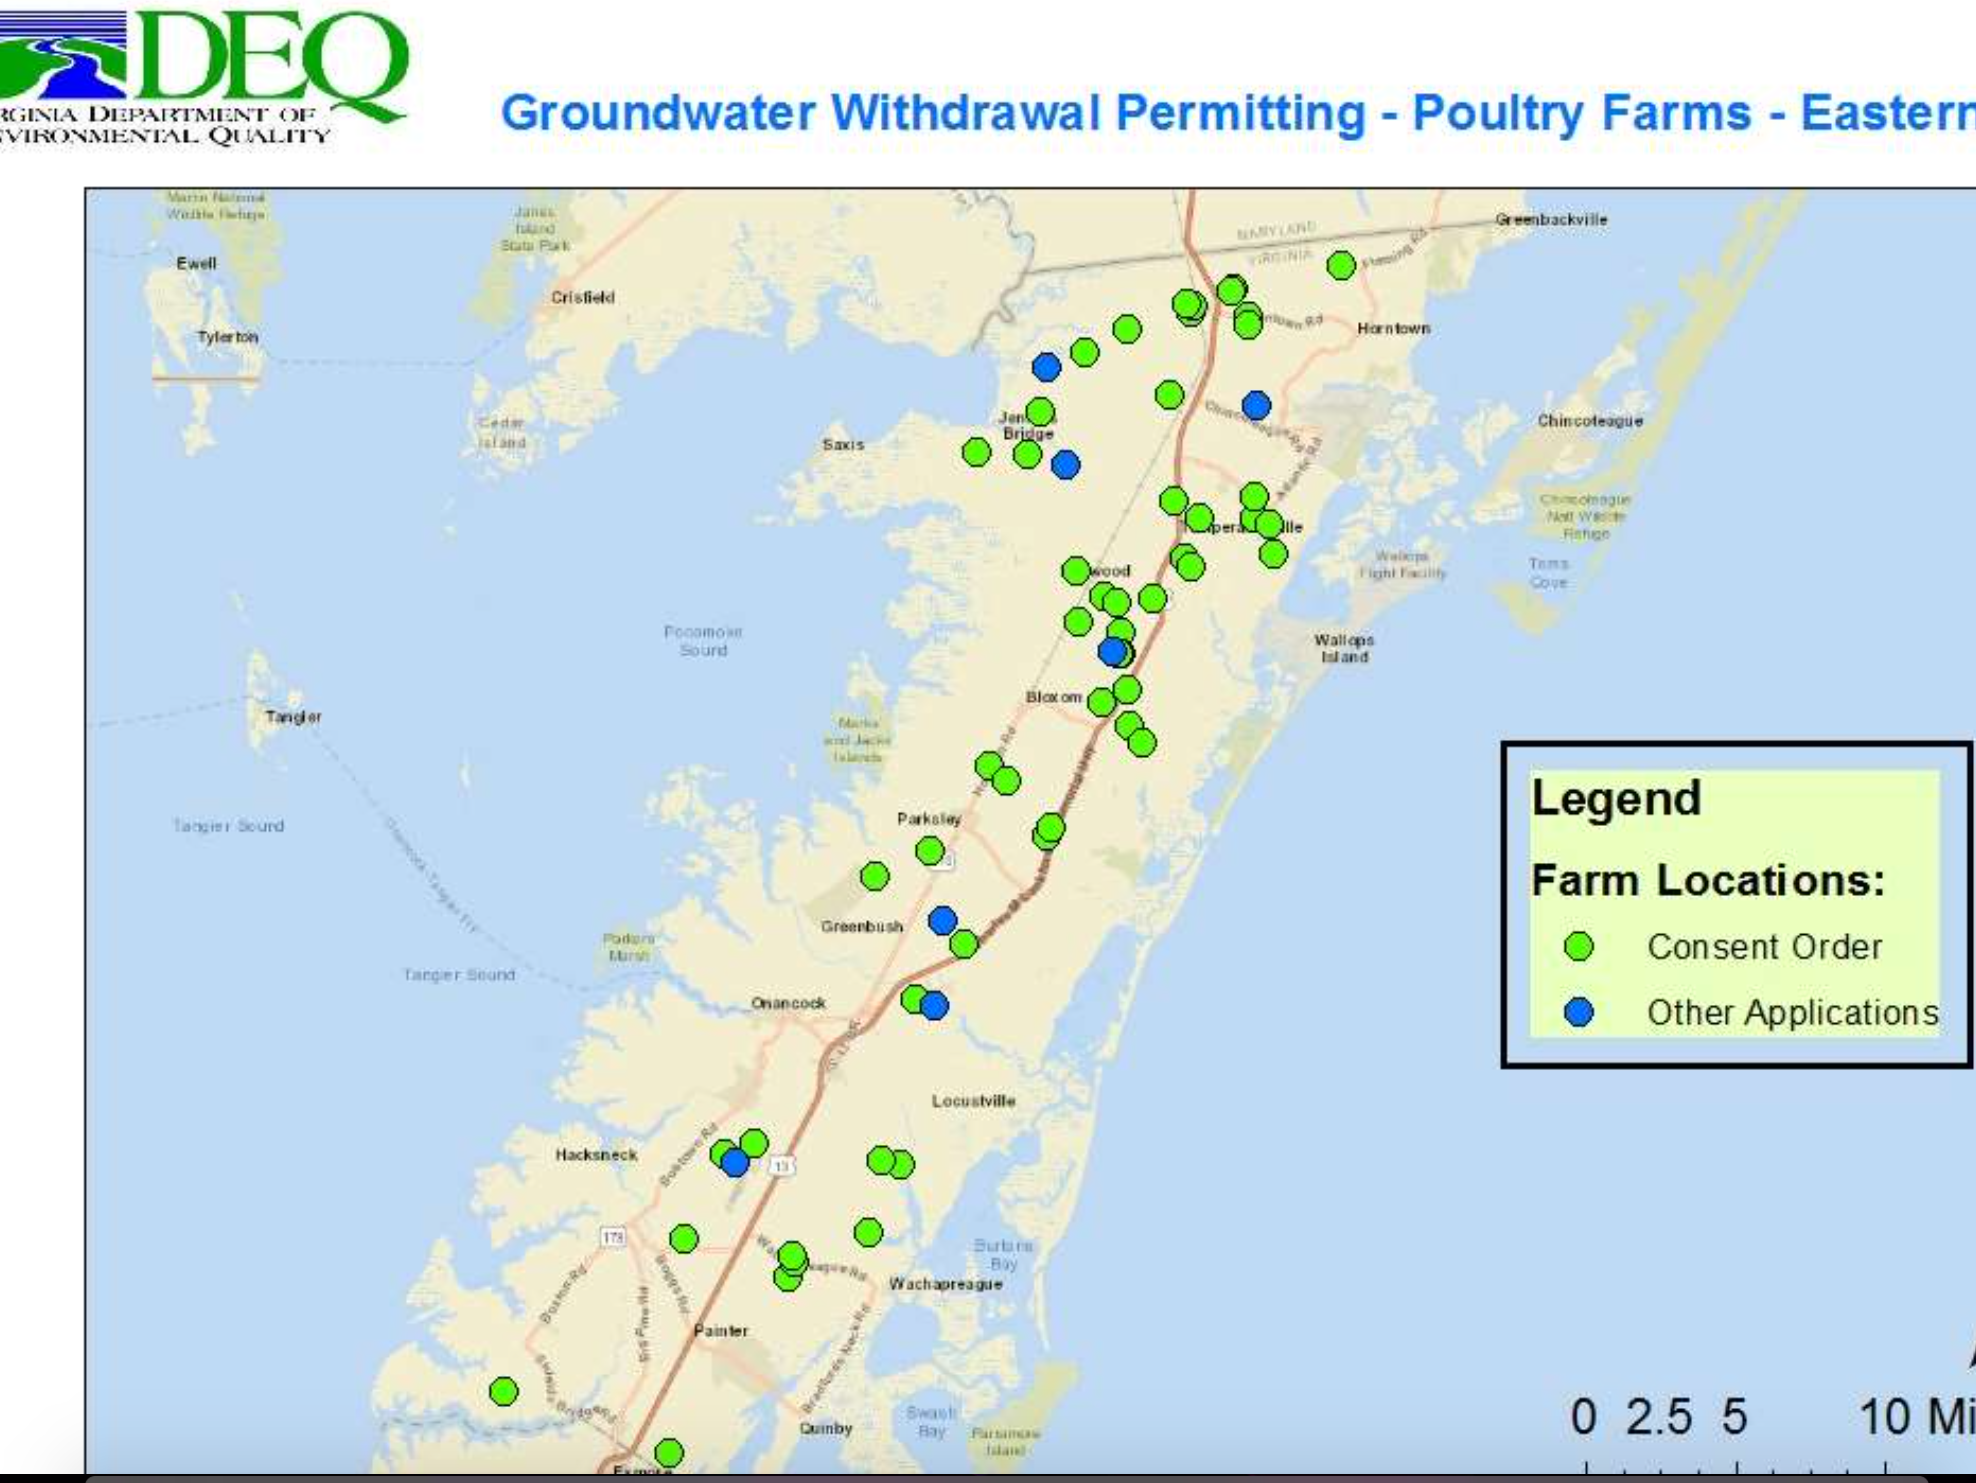 Map of groundwater withdrawal permit applications for poultry farms in Accomack County, Virginia